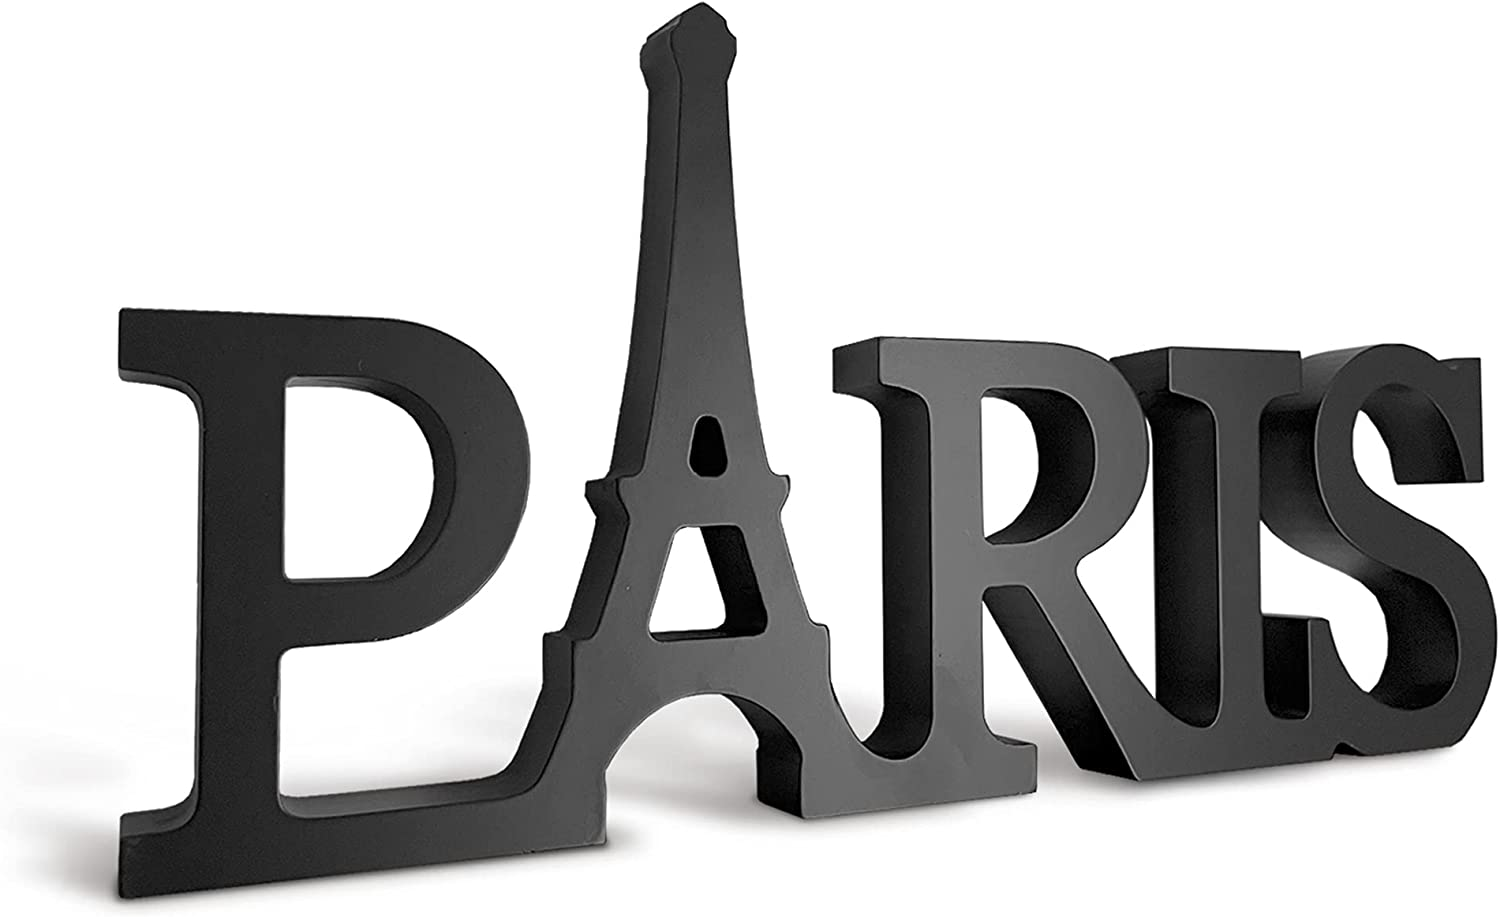 Paris Decor for Bedroom Word Sign (Black) Parisian Themed Eiffel Tower Decor for Girls Bedroom, Elegant Paris Bathroom Decor Ideal as French Room Accent or Wall Art, Stylish Paris Gifts for Women